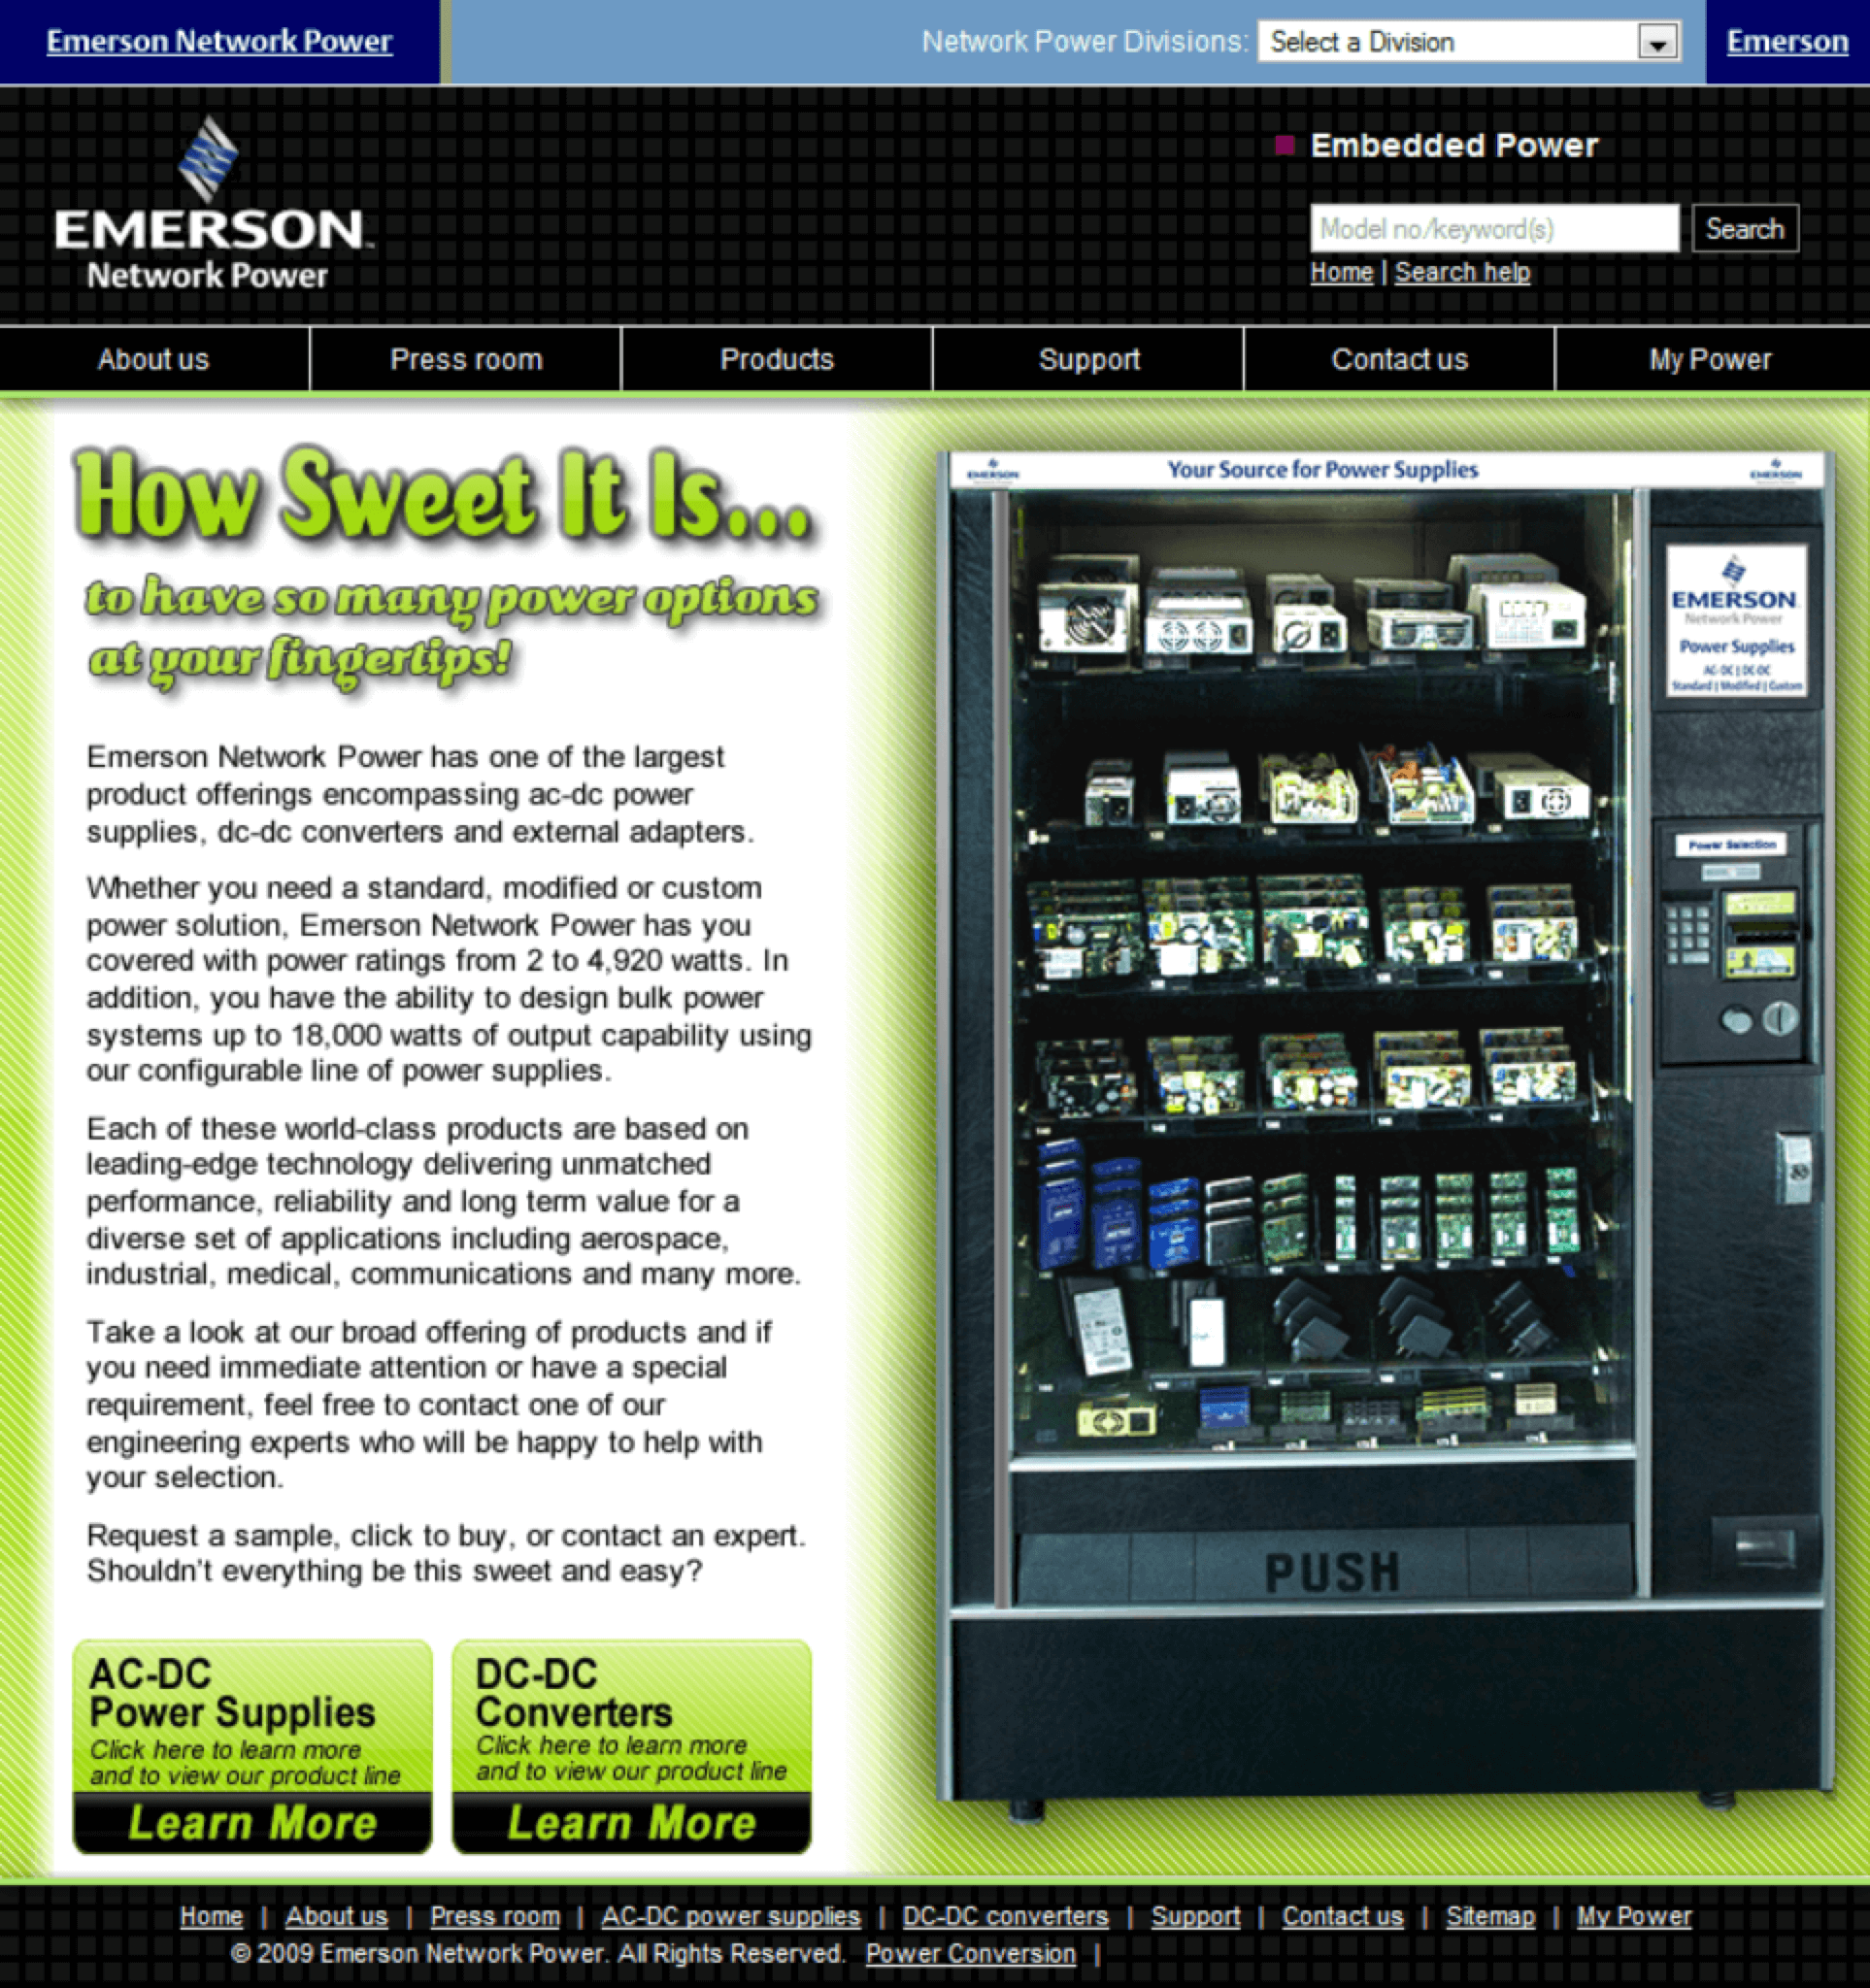 Emerson-AC-DC-Power-Supplies-DC-DC-Converters-Website-Design-Campaign-Page-PC-1